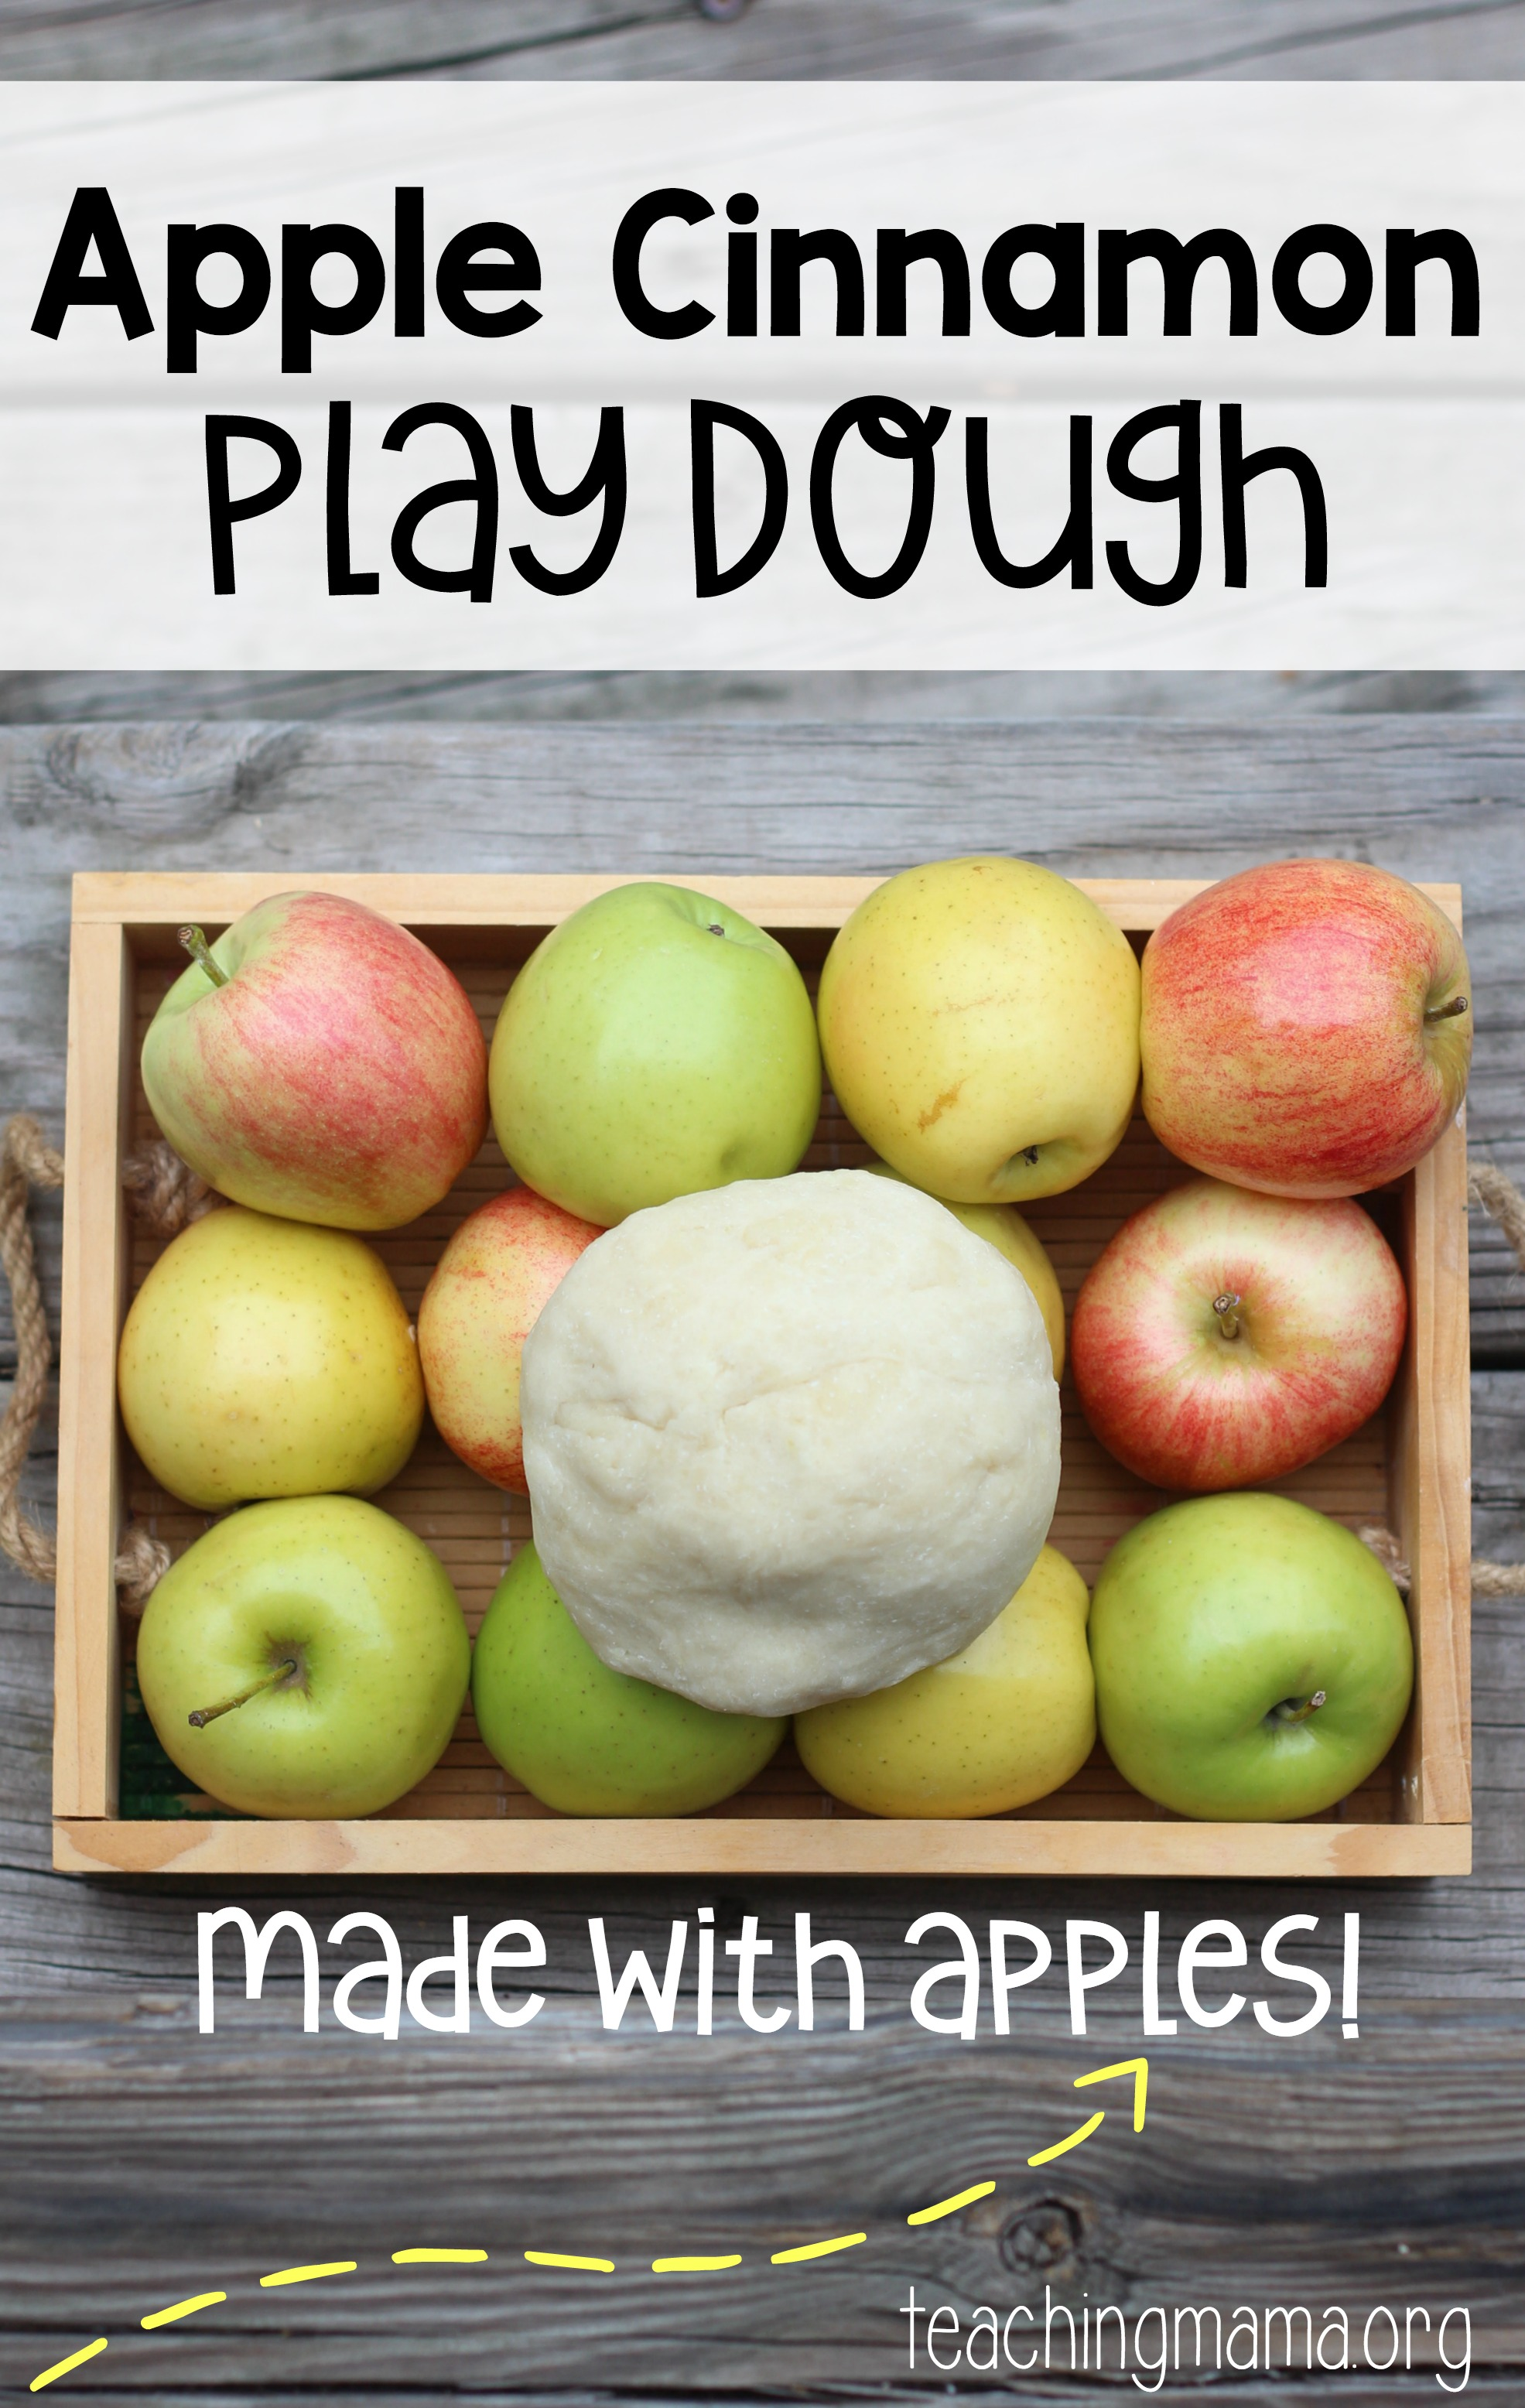 Apple Cinnamon Play Dough Recipe